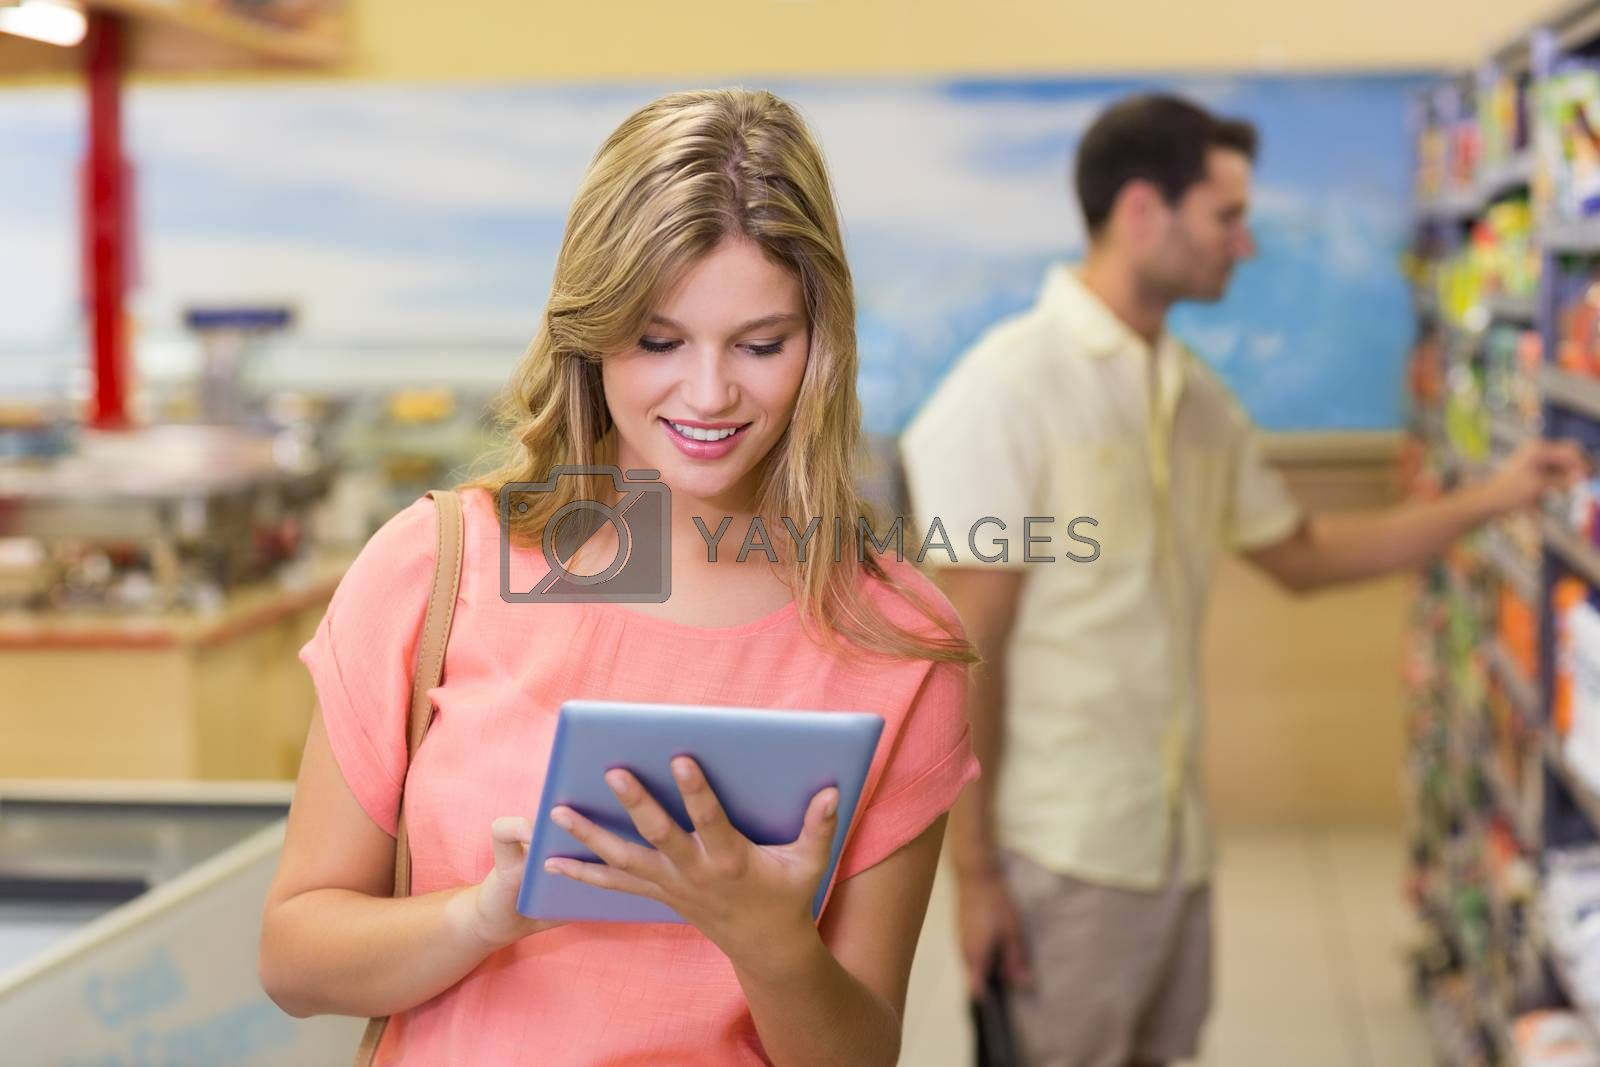 Royalty free image of Smiling pretty blonde woman using digital tablet and buying products  by Wavebreakmedia